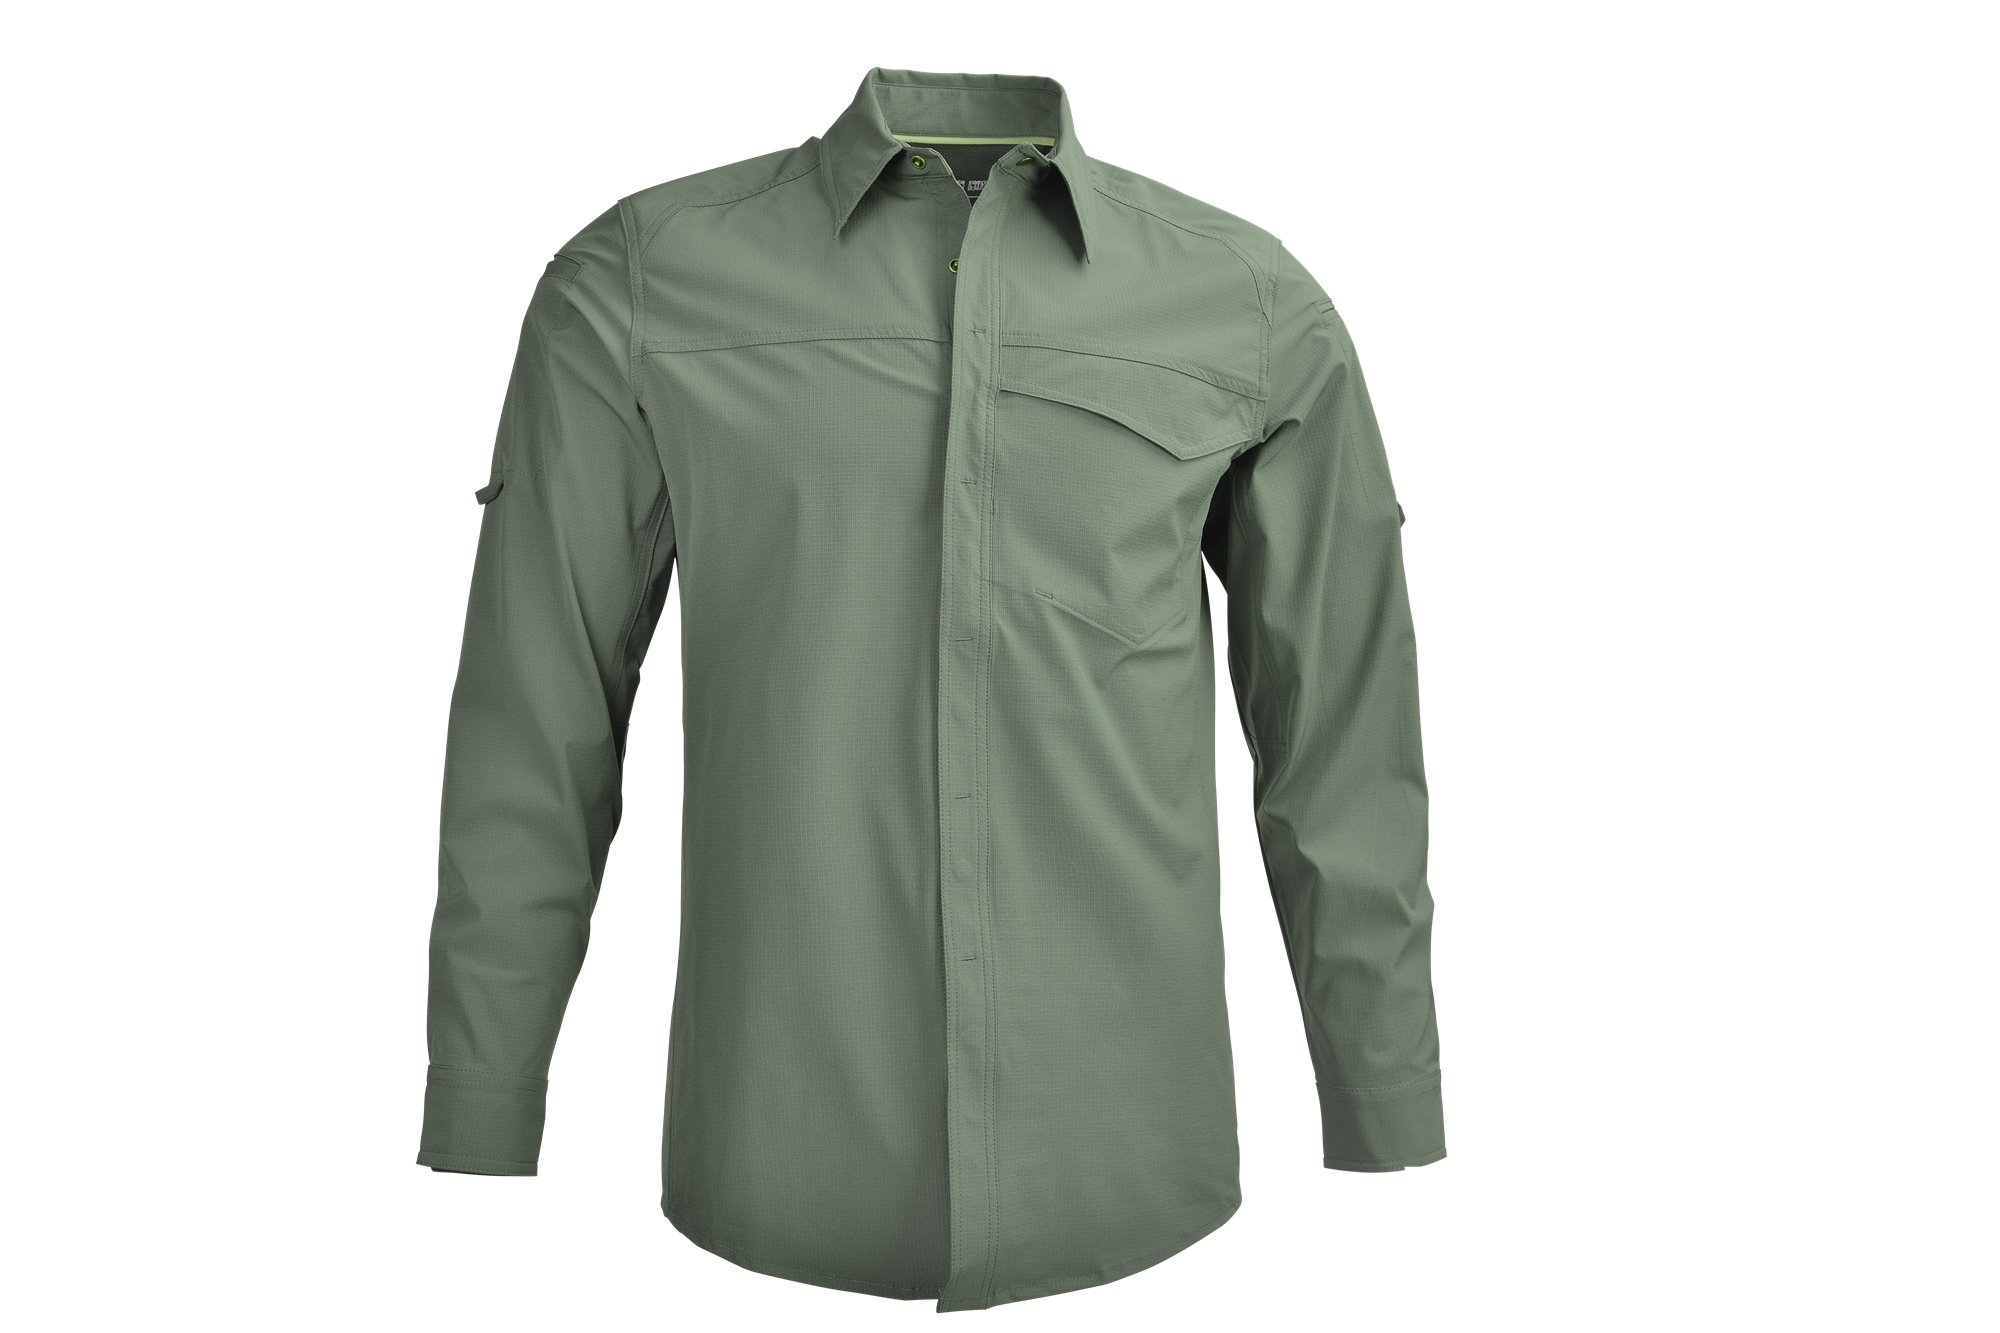 Long Sleeve Shirt Outdoor Sport Lightweight Breathable Quick Dry for Men